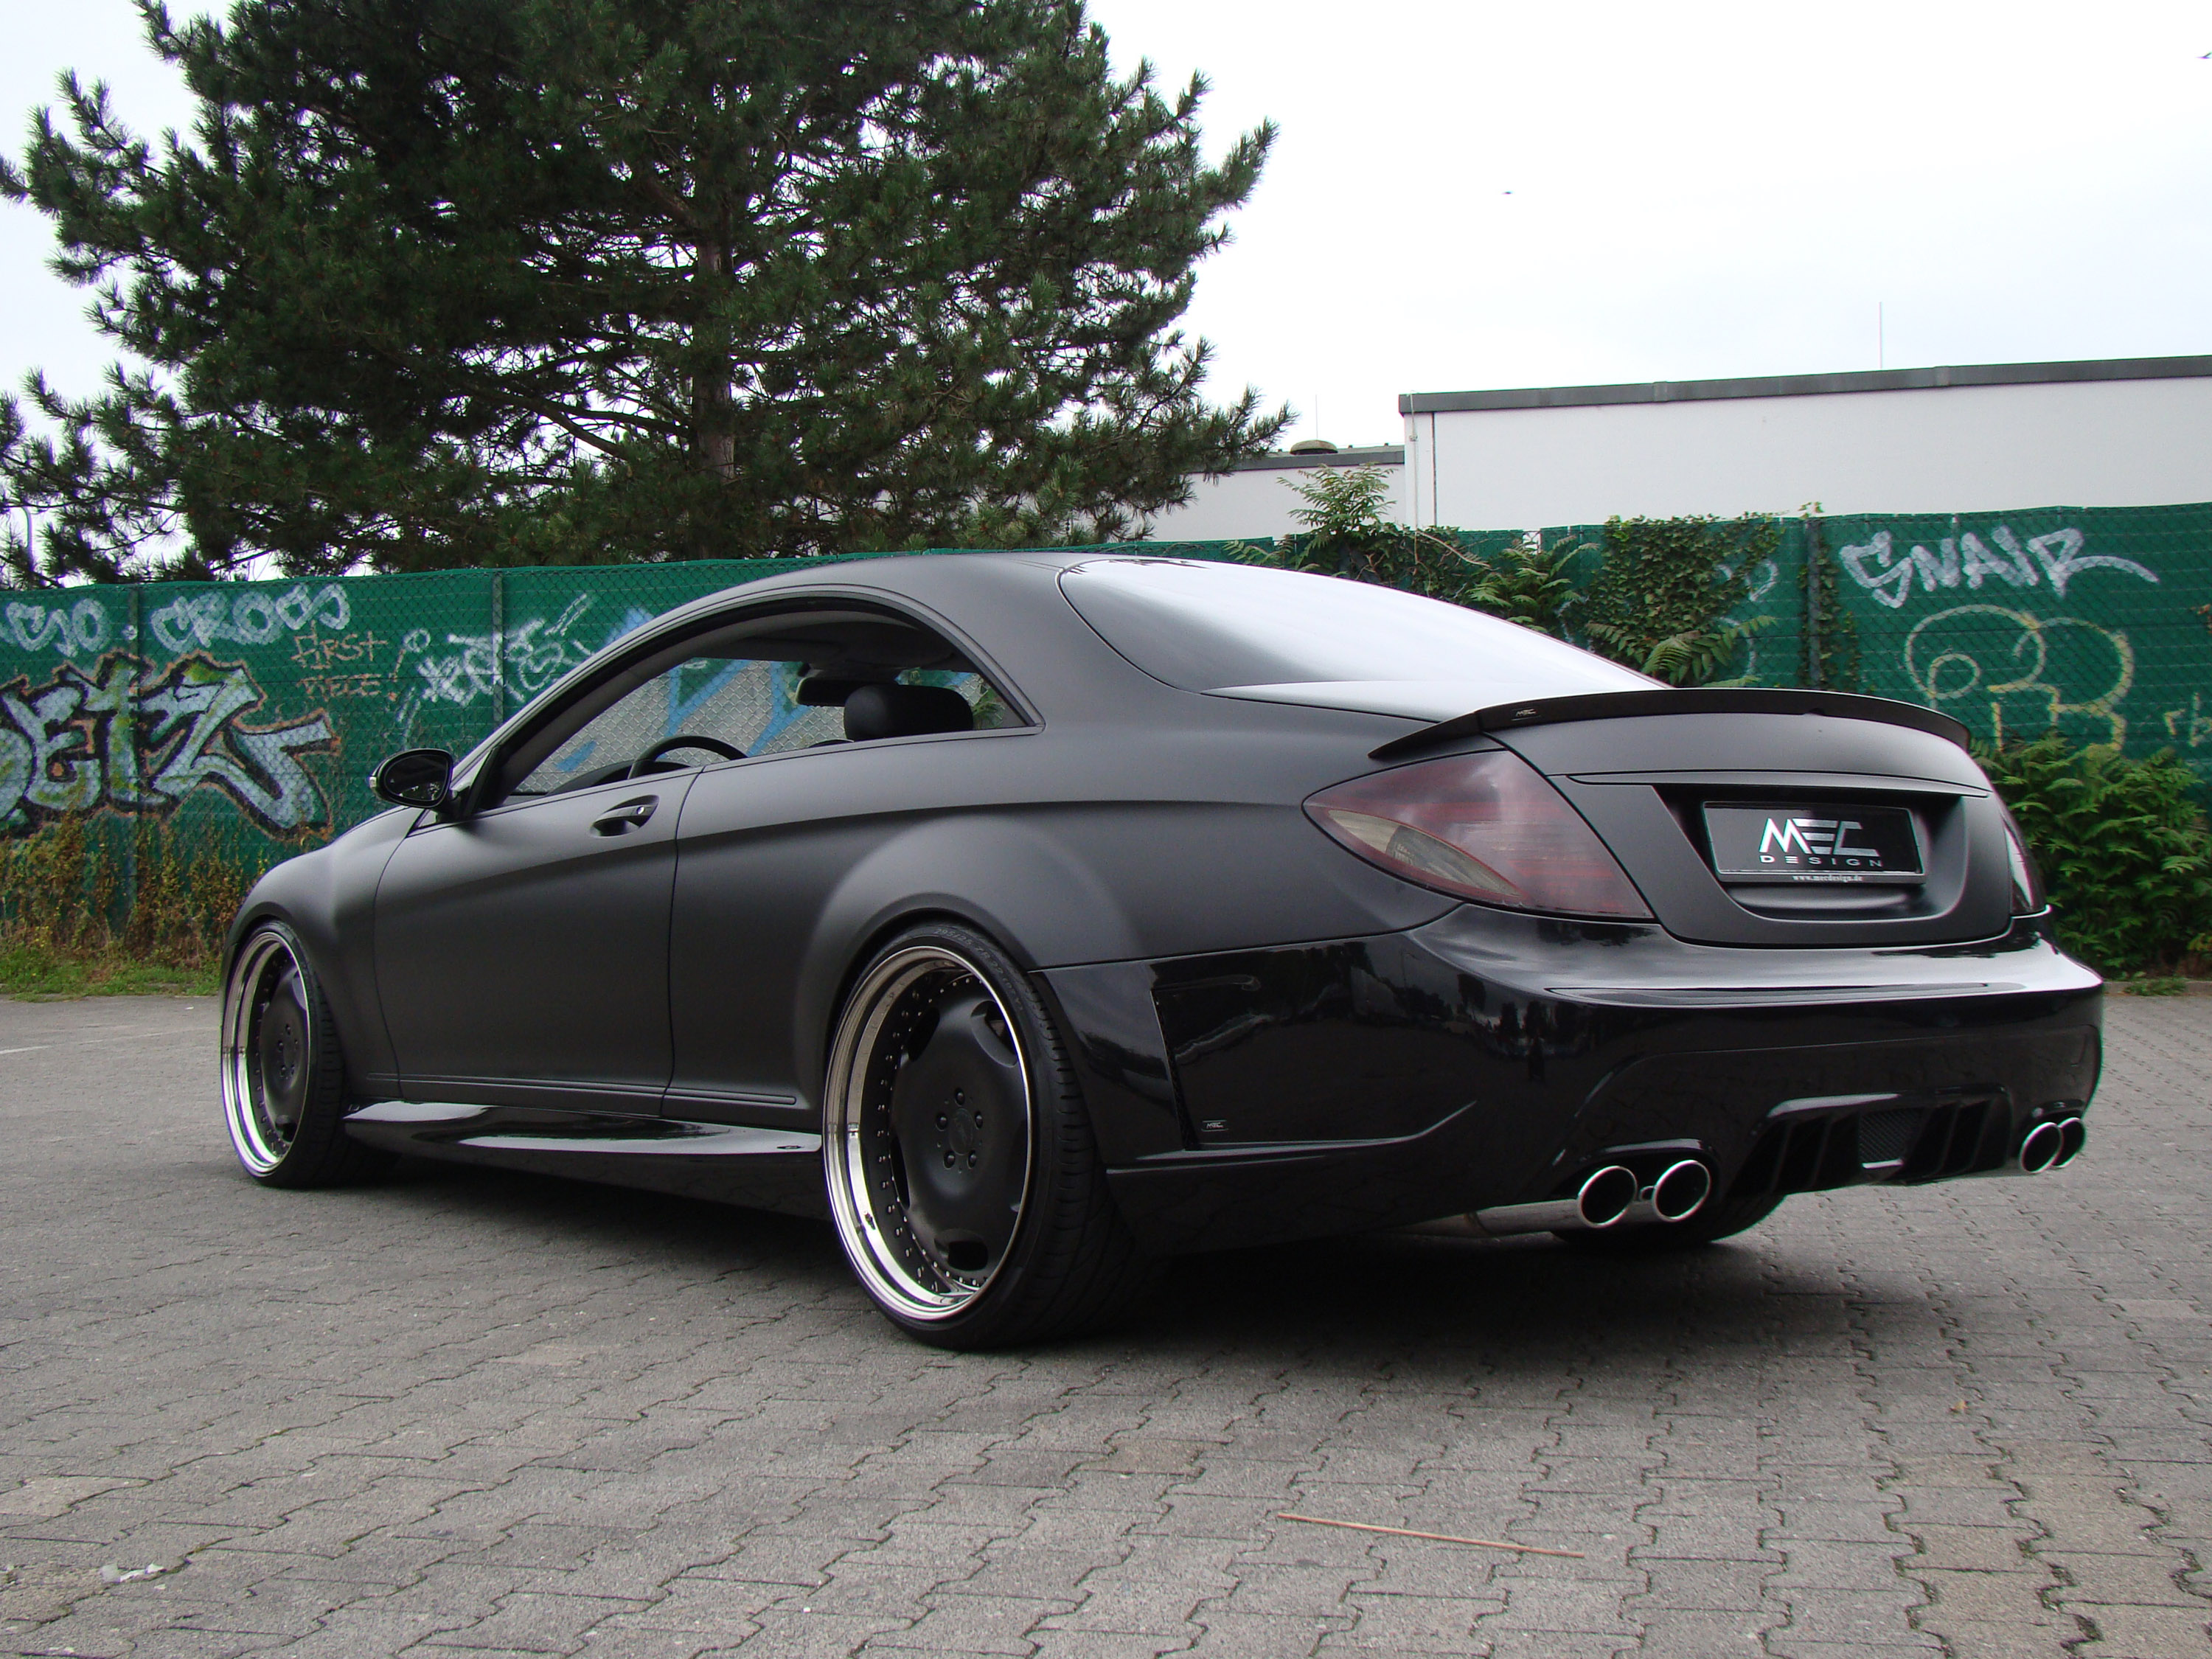 Mercedes Benz Where Are They Made